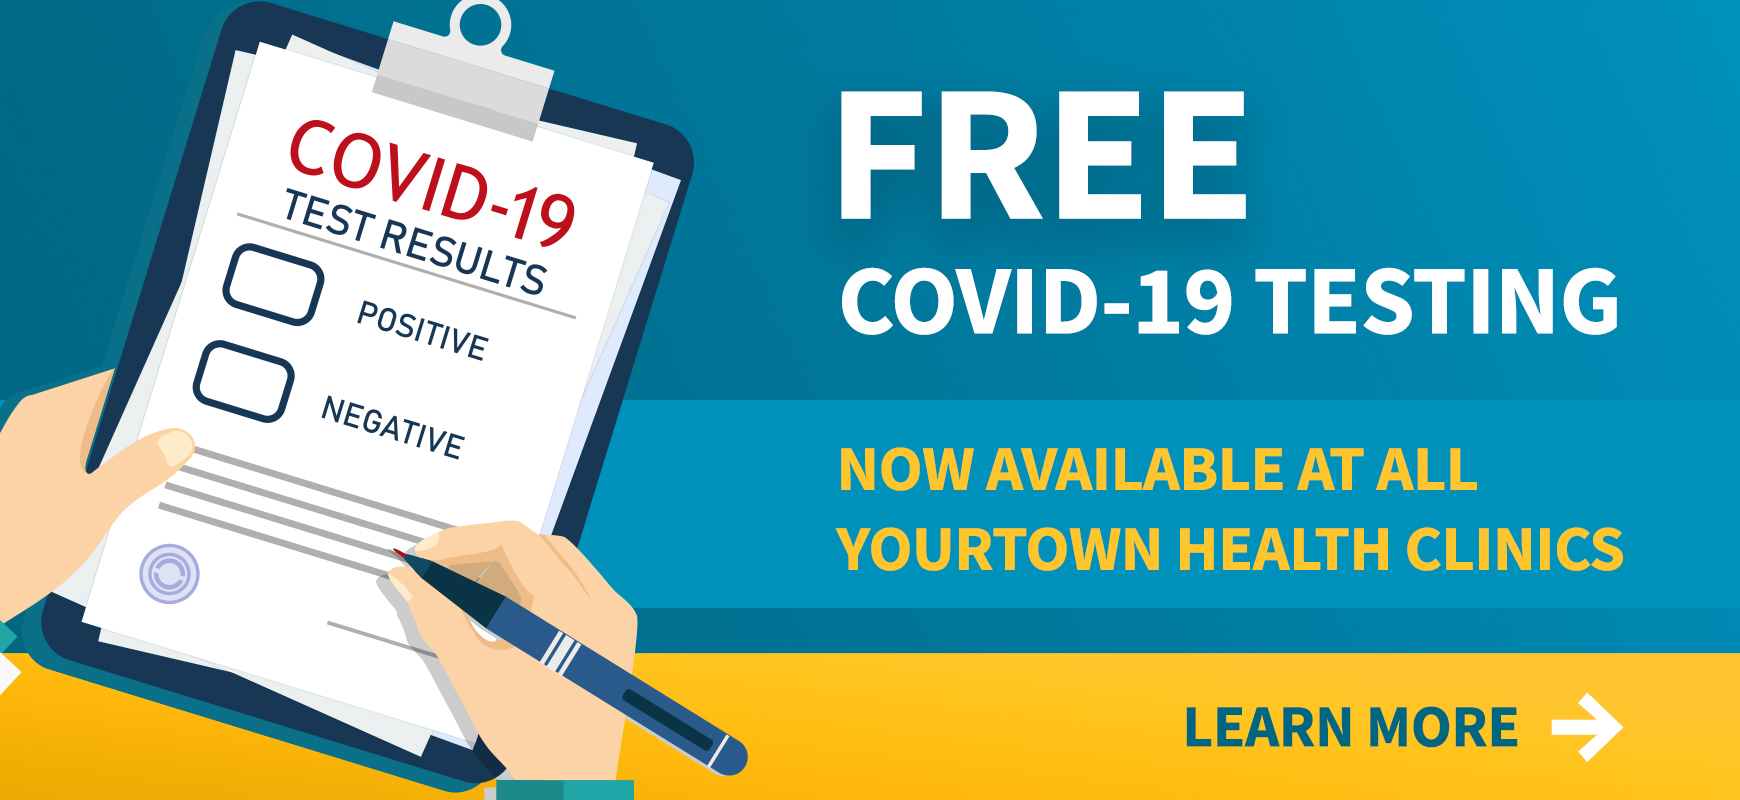 Free COVID-19 Testing: Now Available at All YourTown Health Clinics. Learn More.